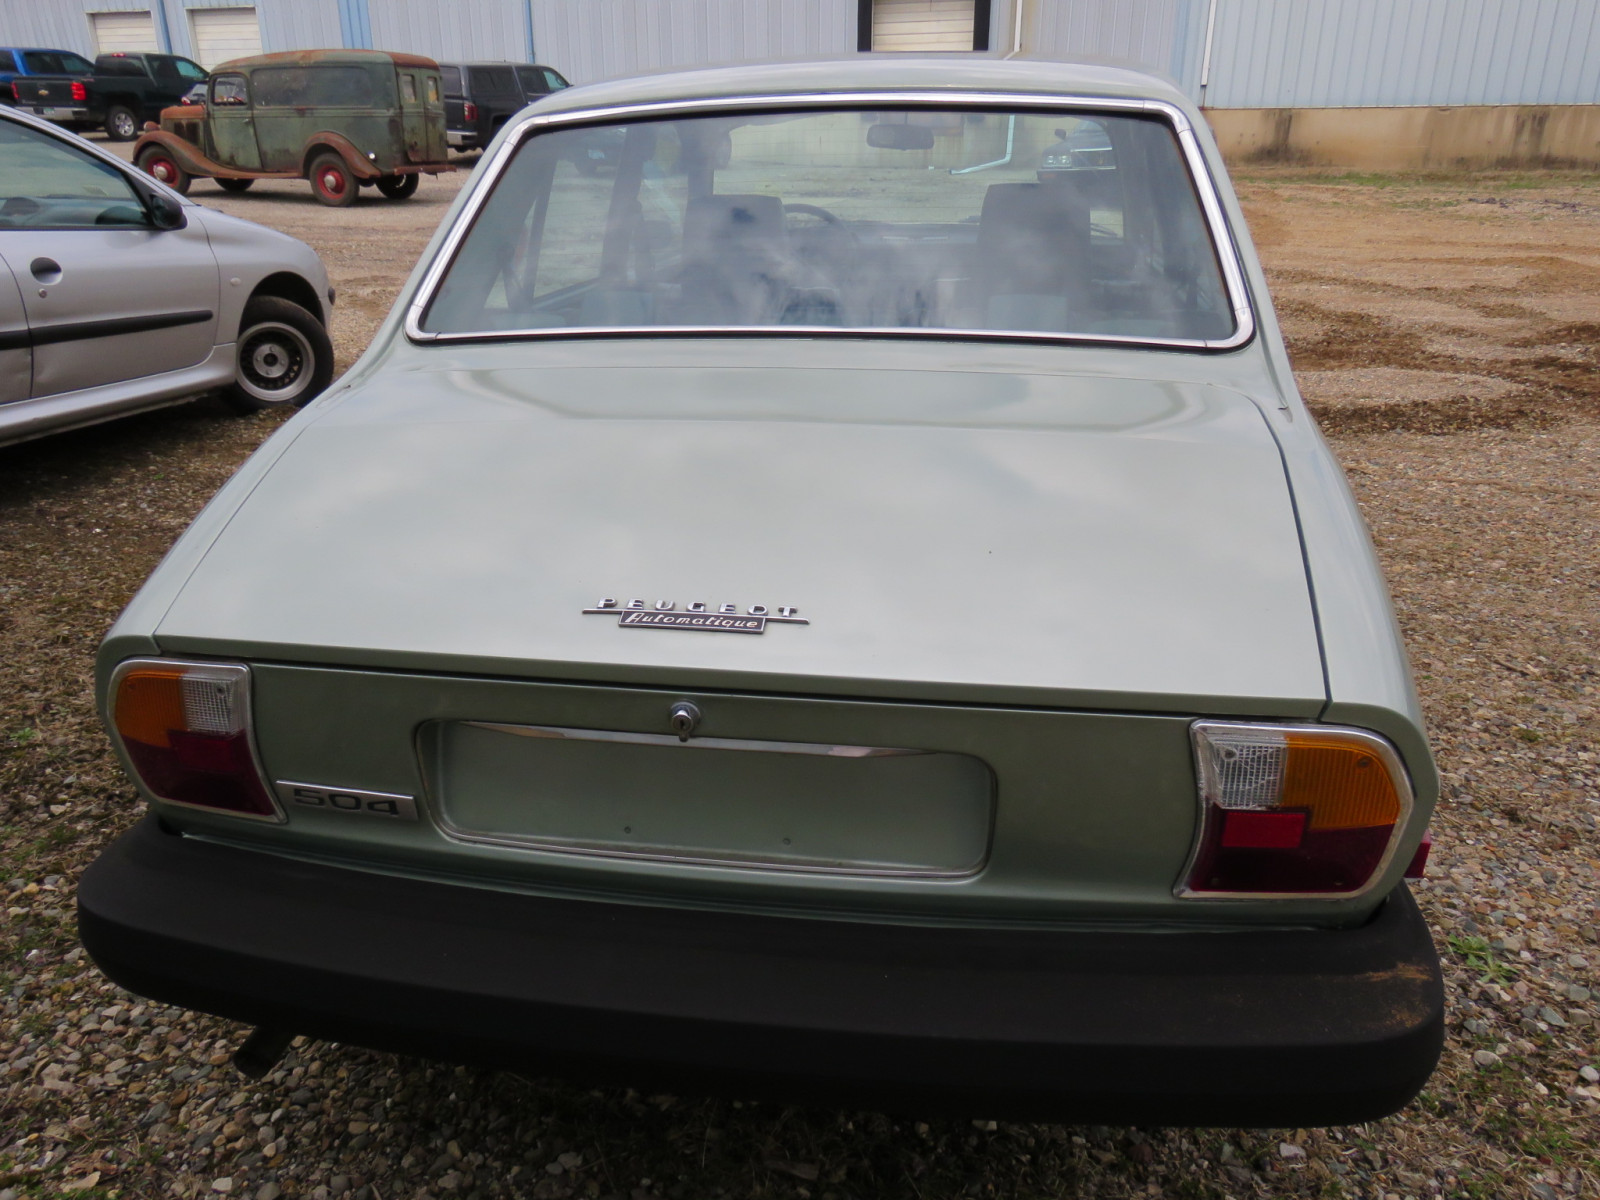 1979 Peugeot 504 4dr Automatique Sedan - Image 5